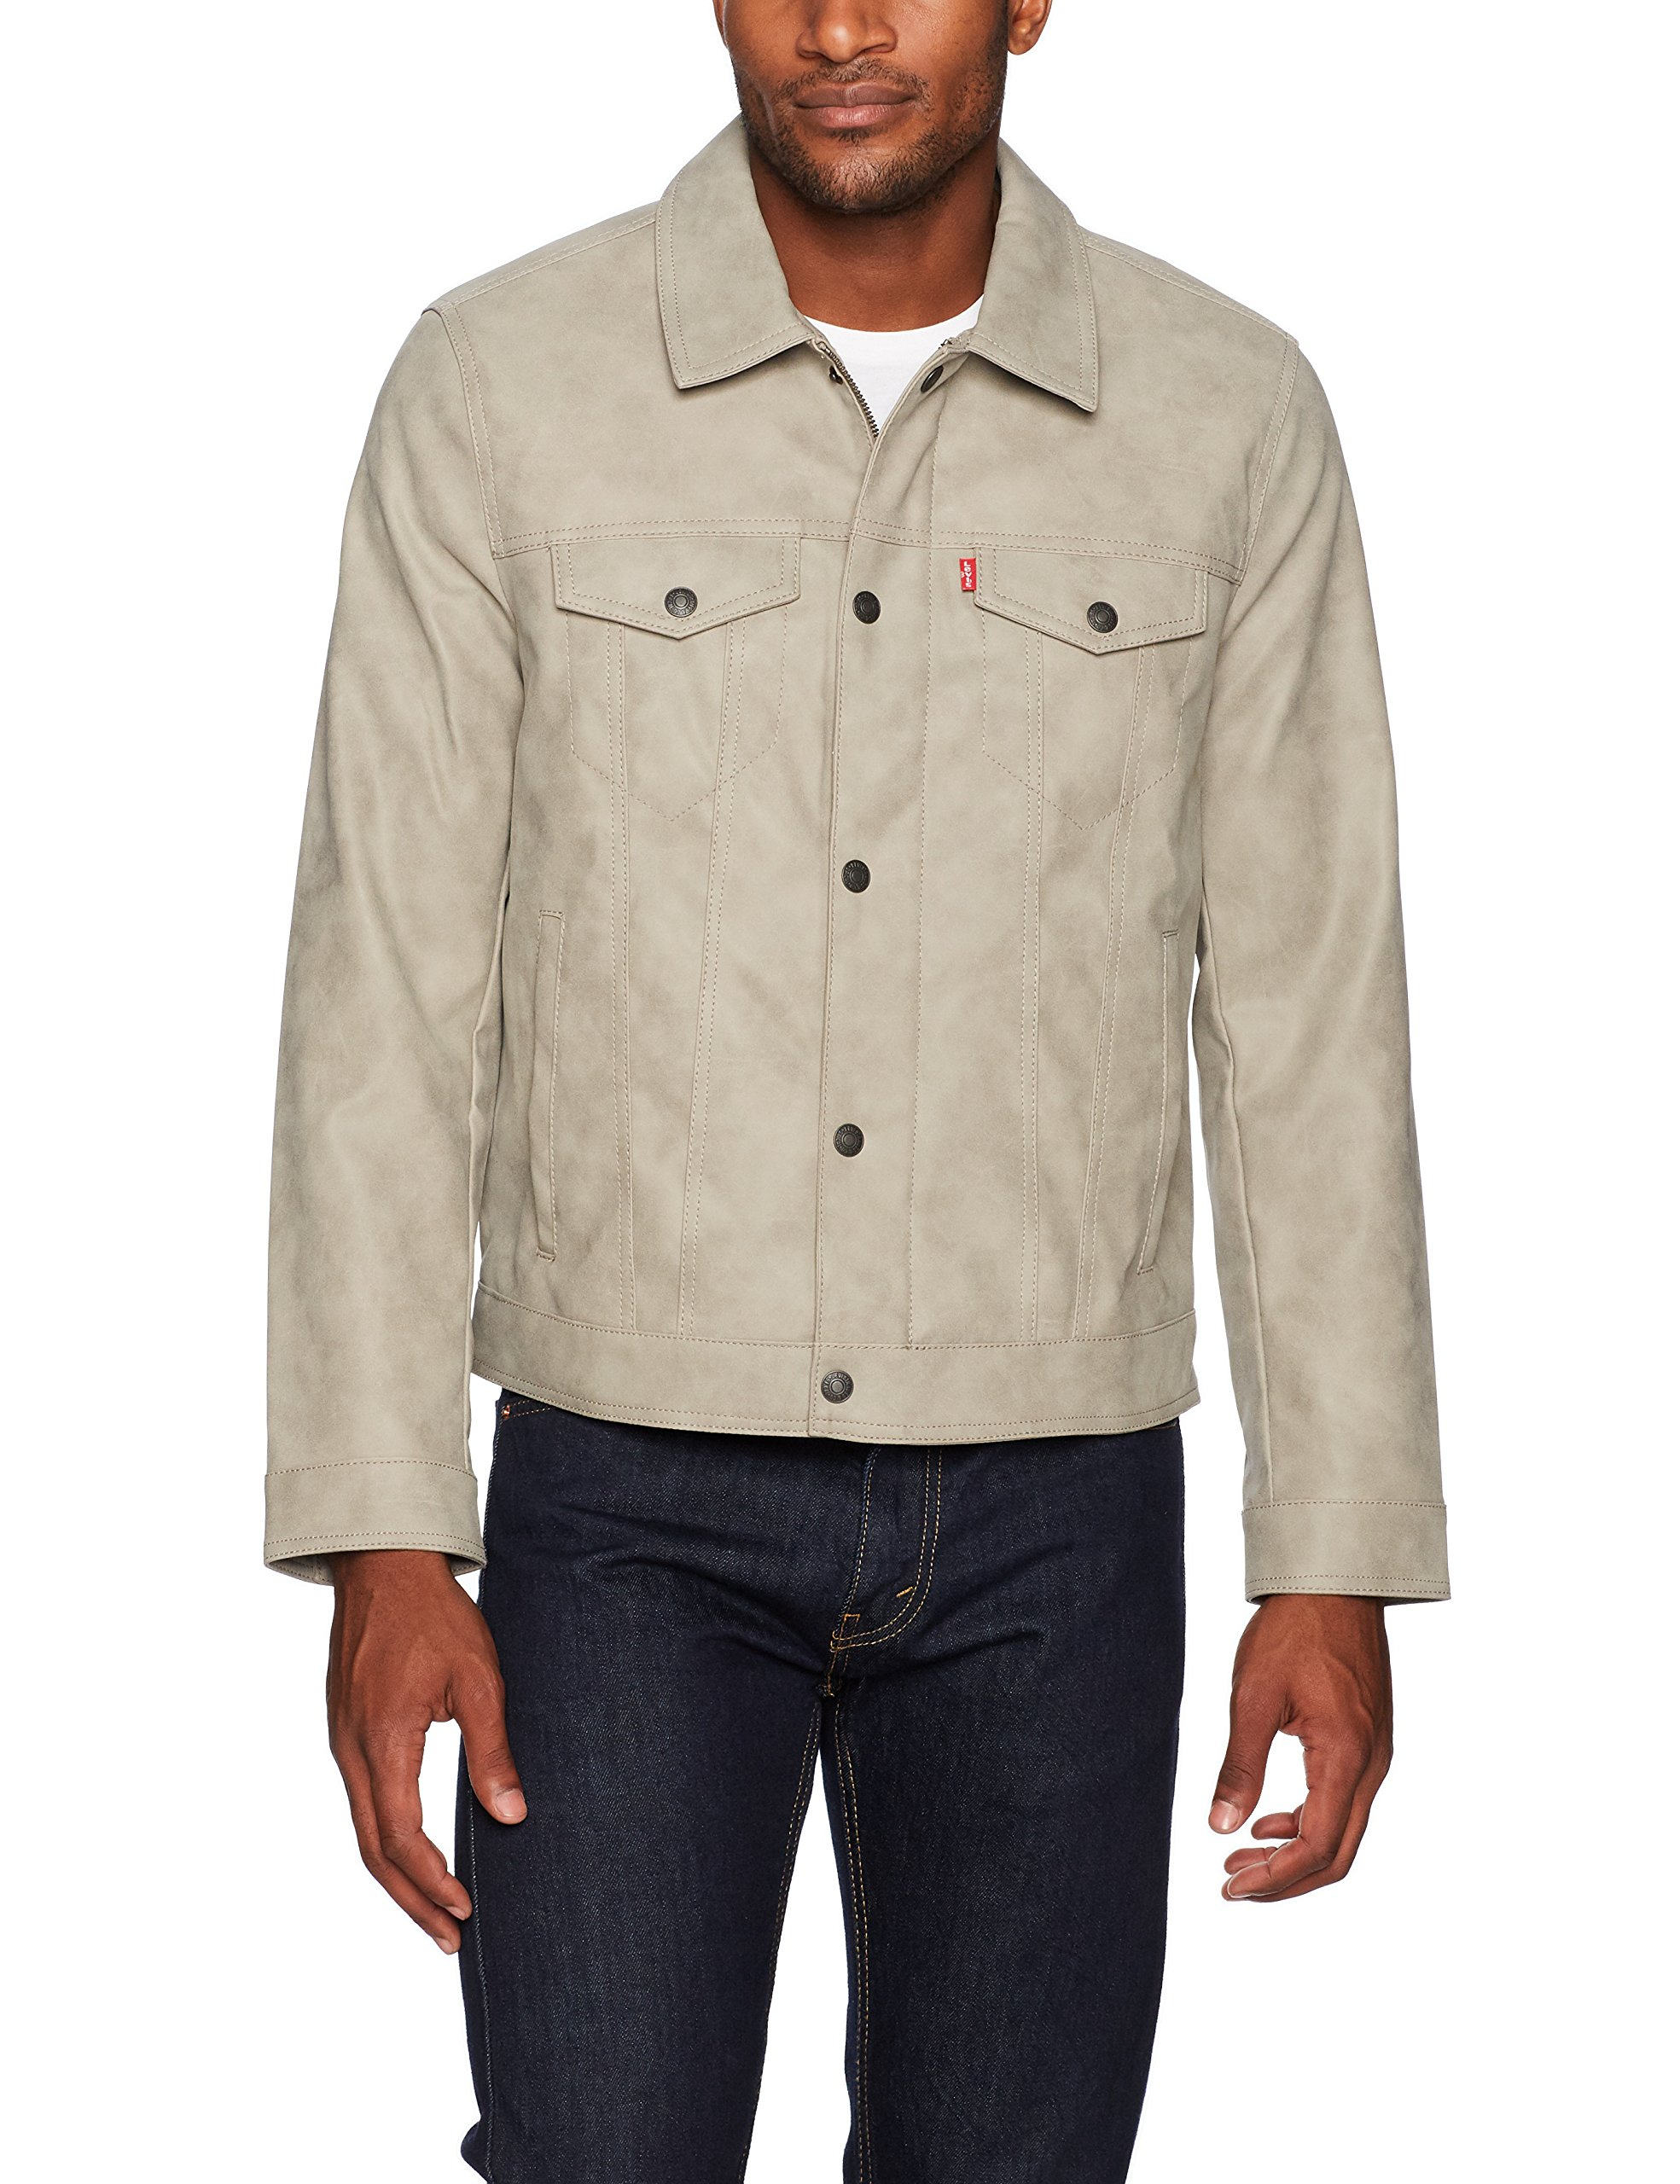 Levi's Men's Suede Touch Trucker Jacket, Light Grey, Large